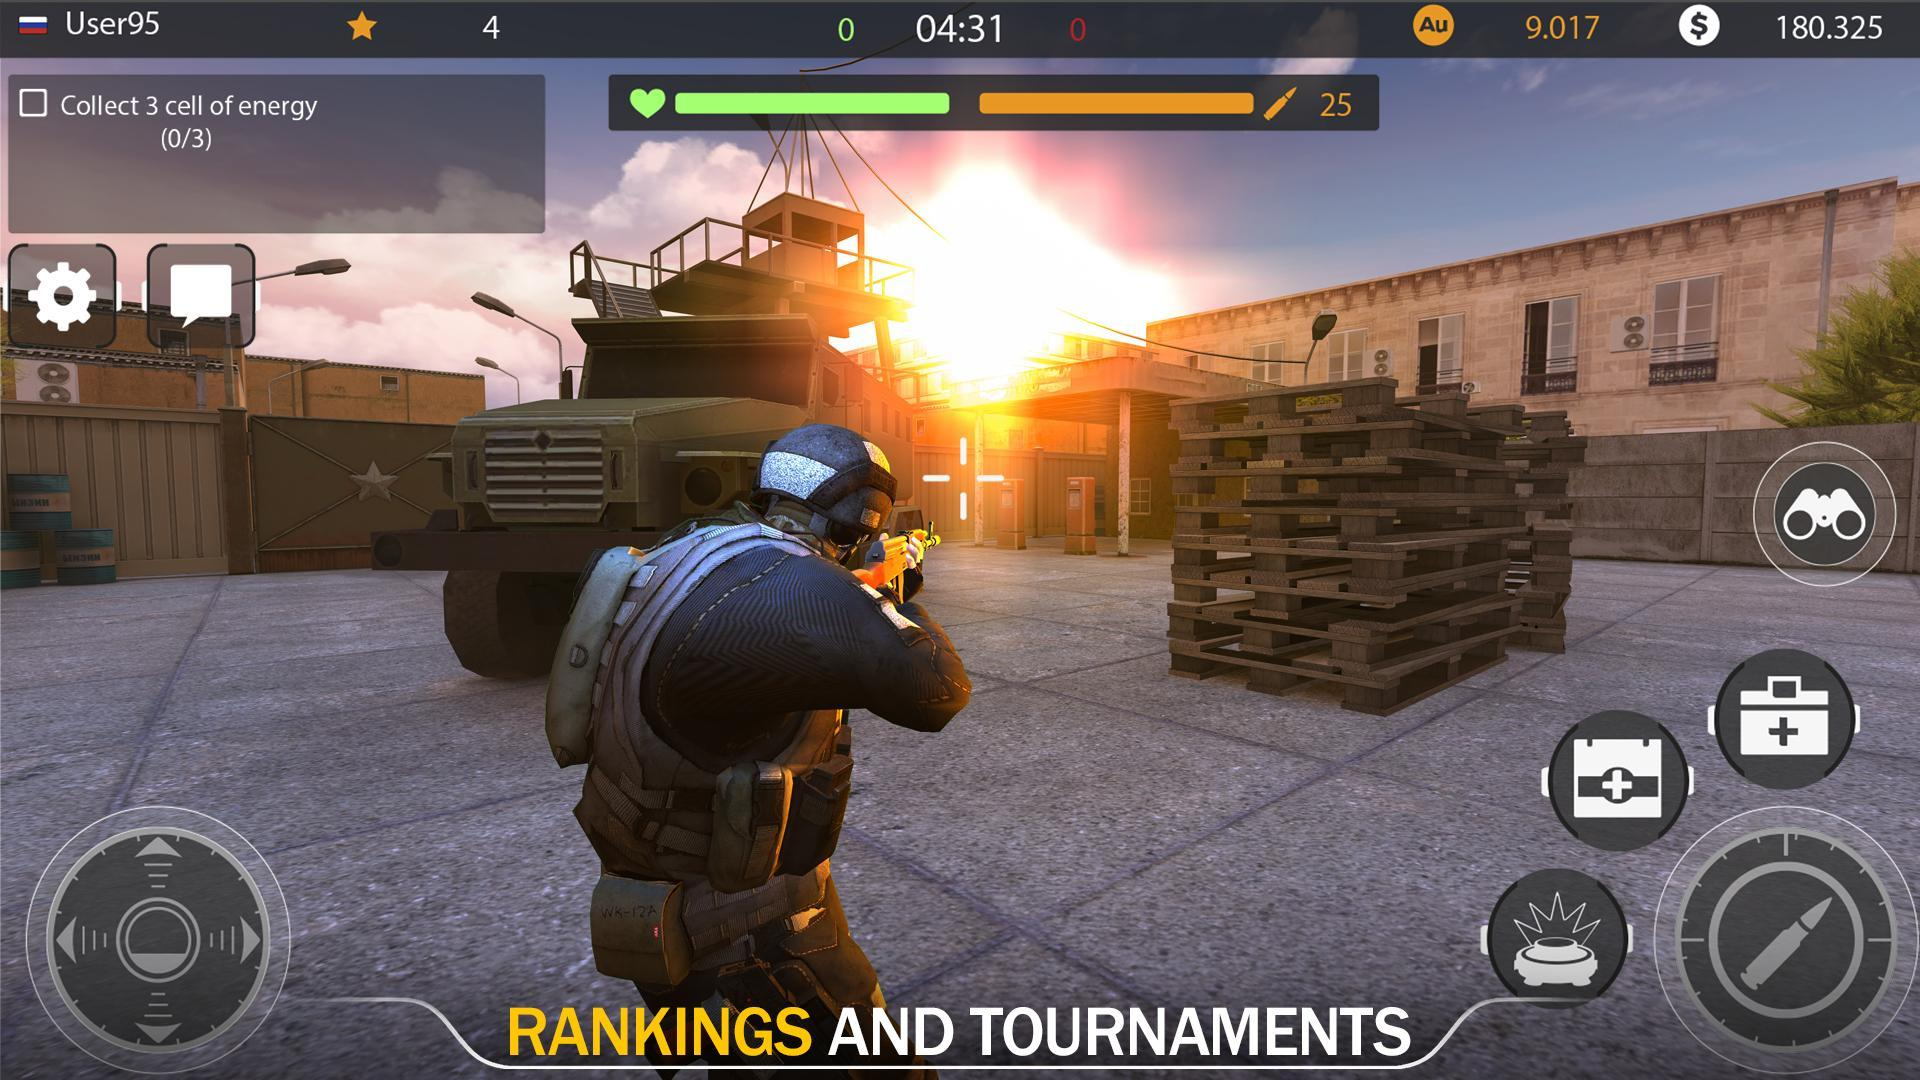 Code of War: Online Shooter Game 3.14.6 Screenshot 18